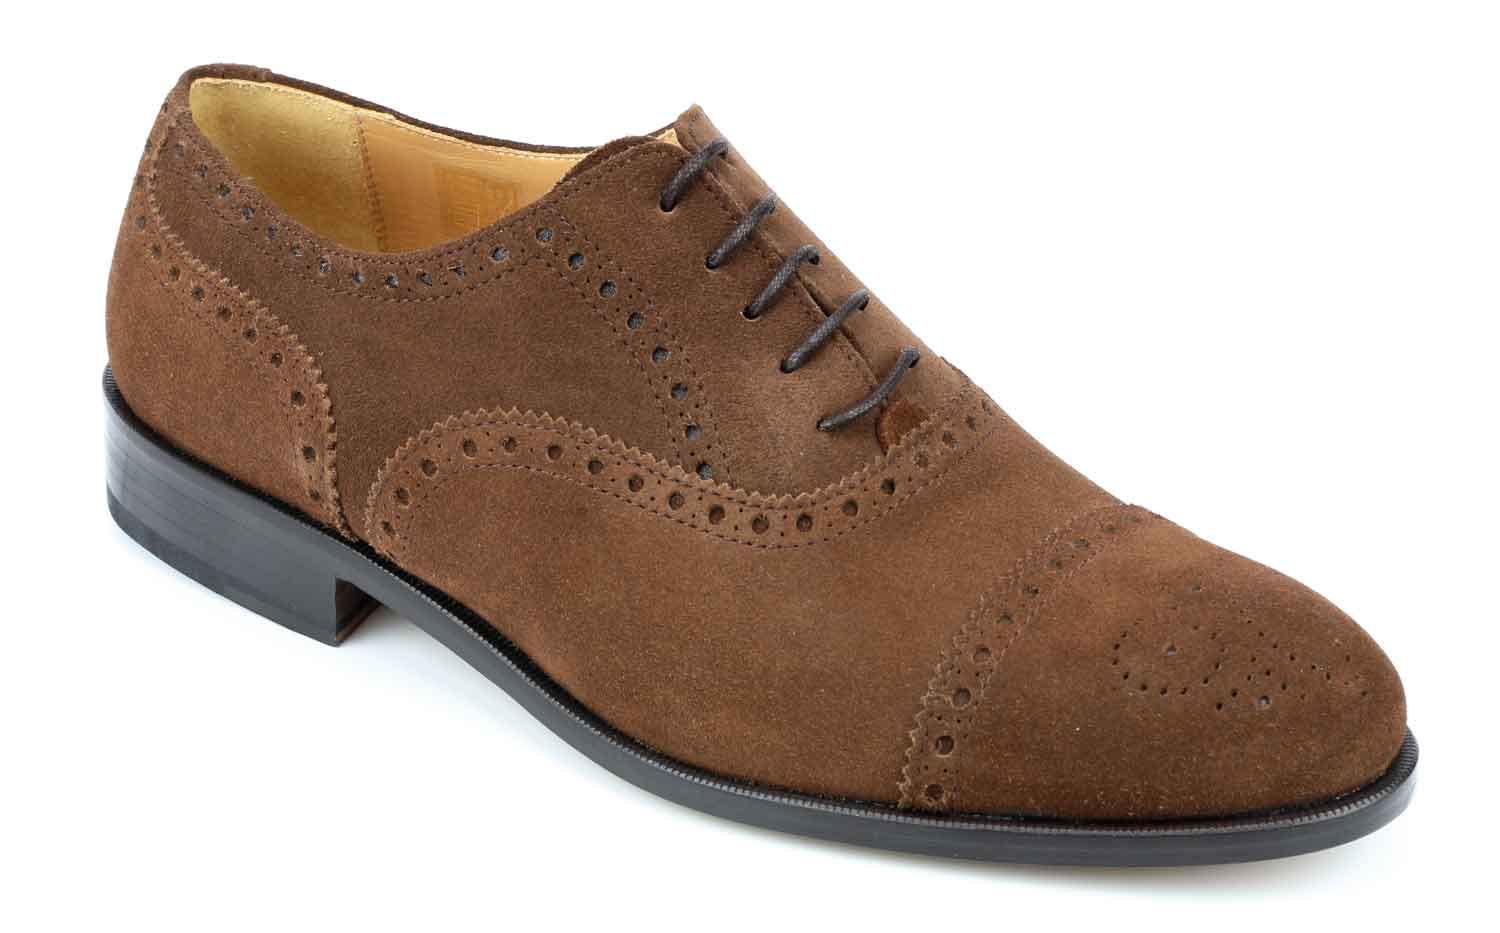 Suede Men's Shoes: Find the right shoe for any occasion from truedfil3gz.gq Your Online Shoes Store! Get 5% in rewards with Club O!